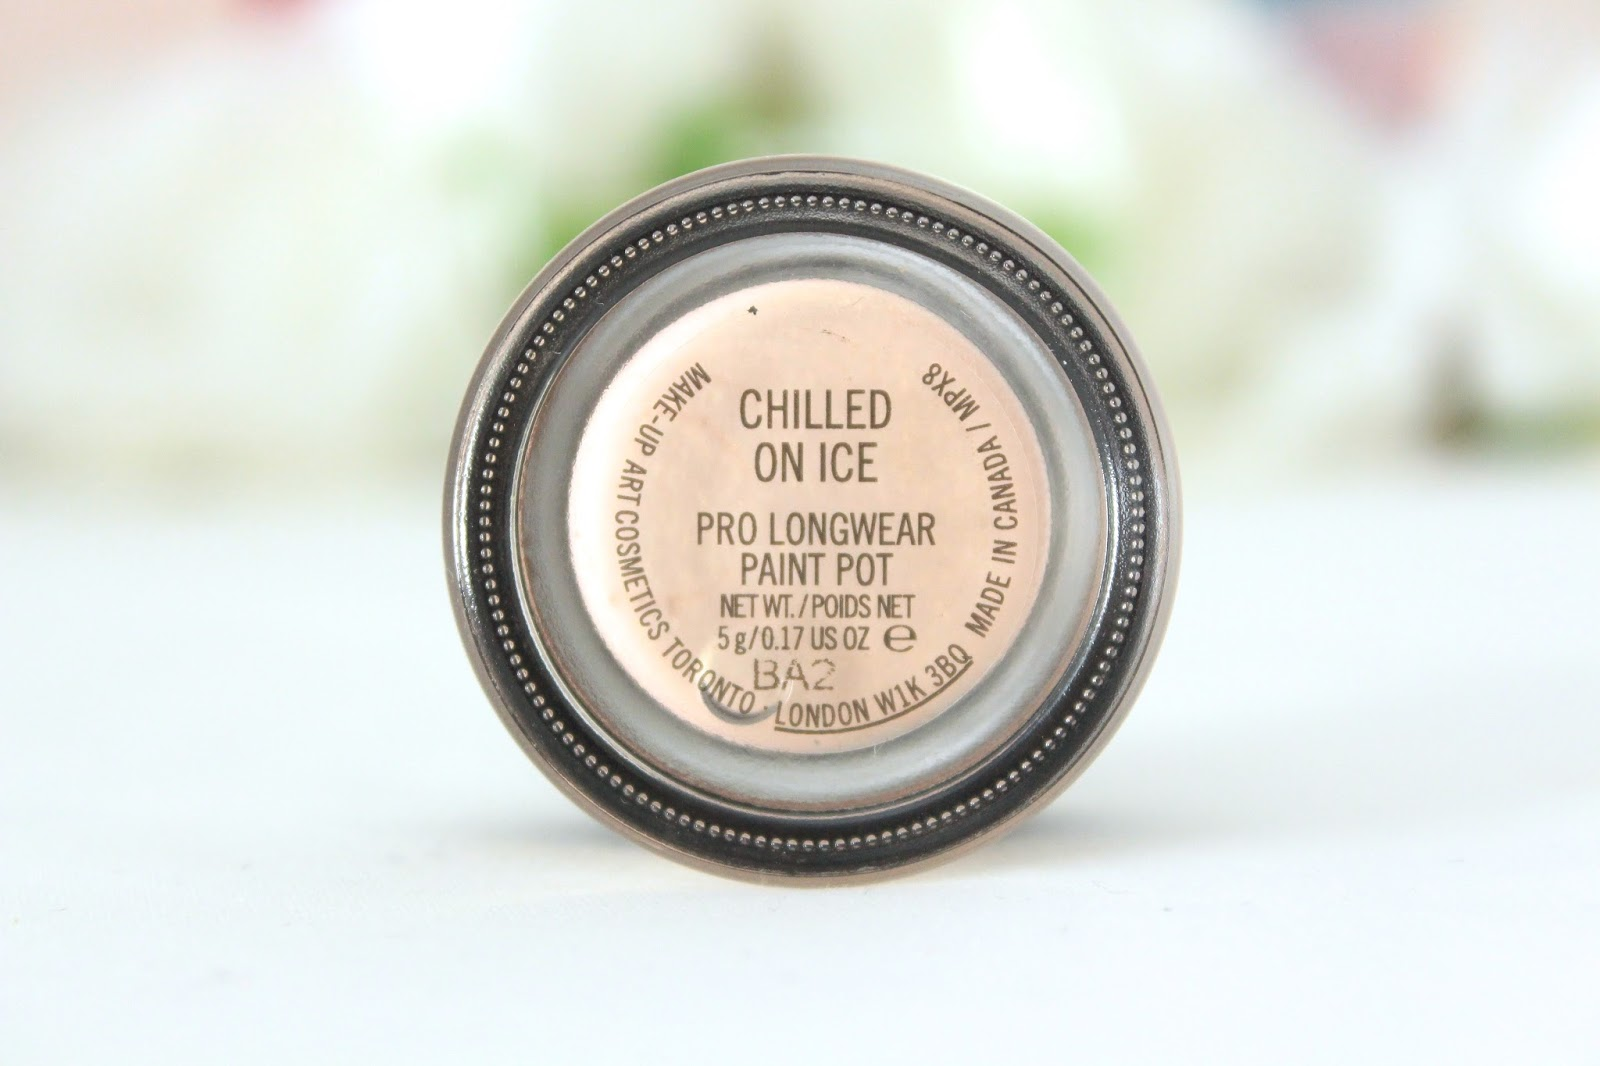 lipgloss lashes mac chilled on pro longwear paint pot review swatches